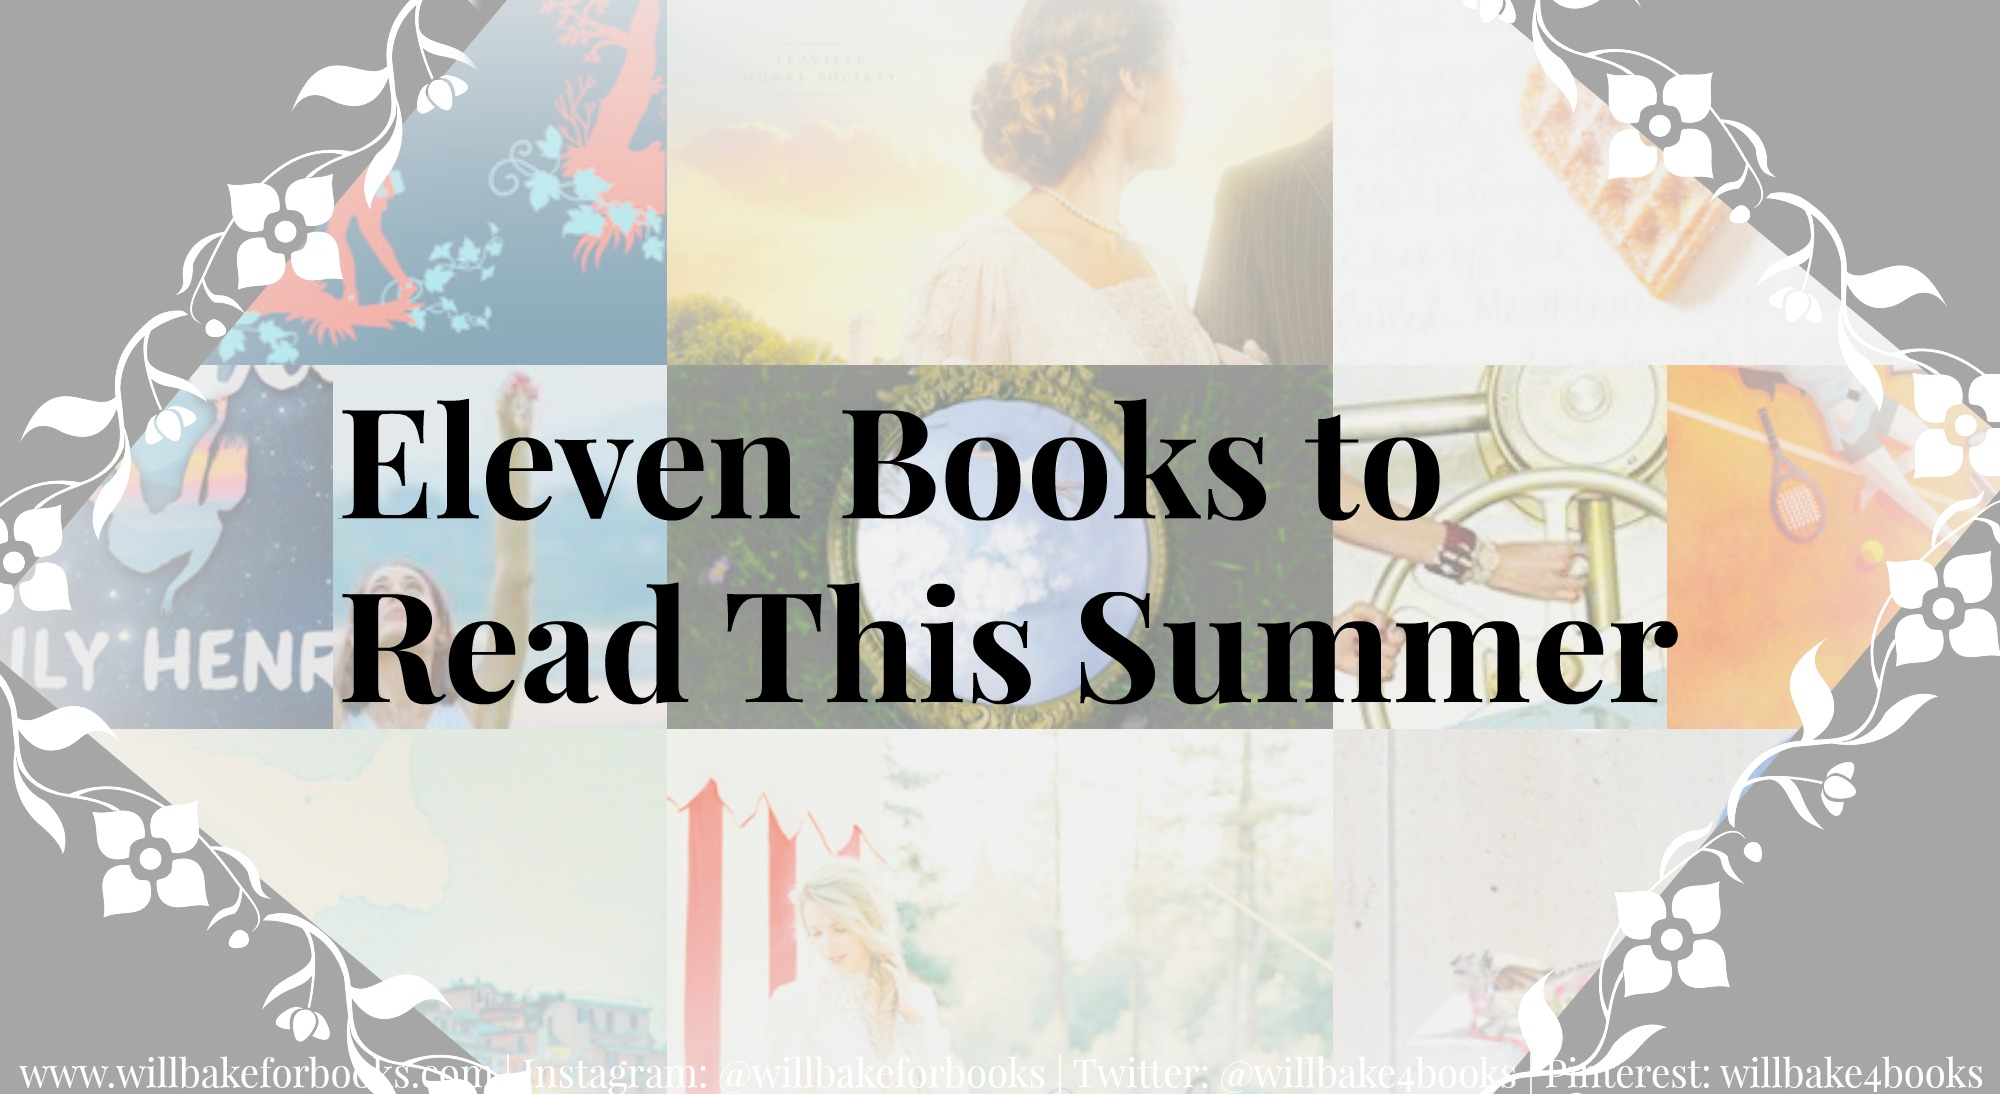 Eleven Books to Read This Summer